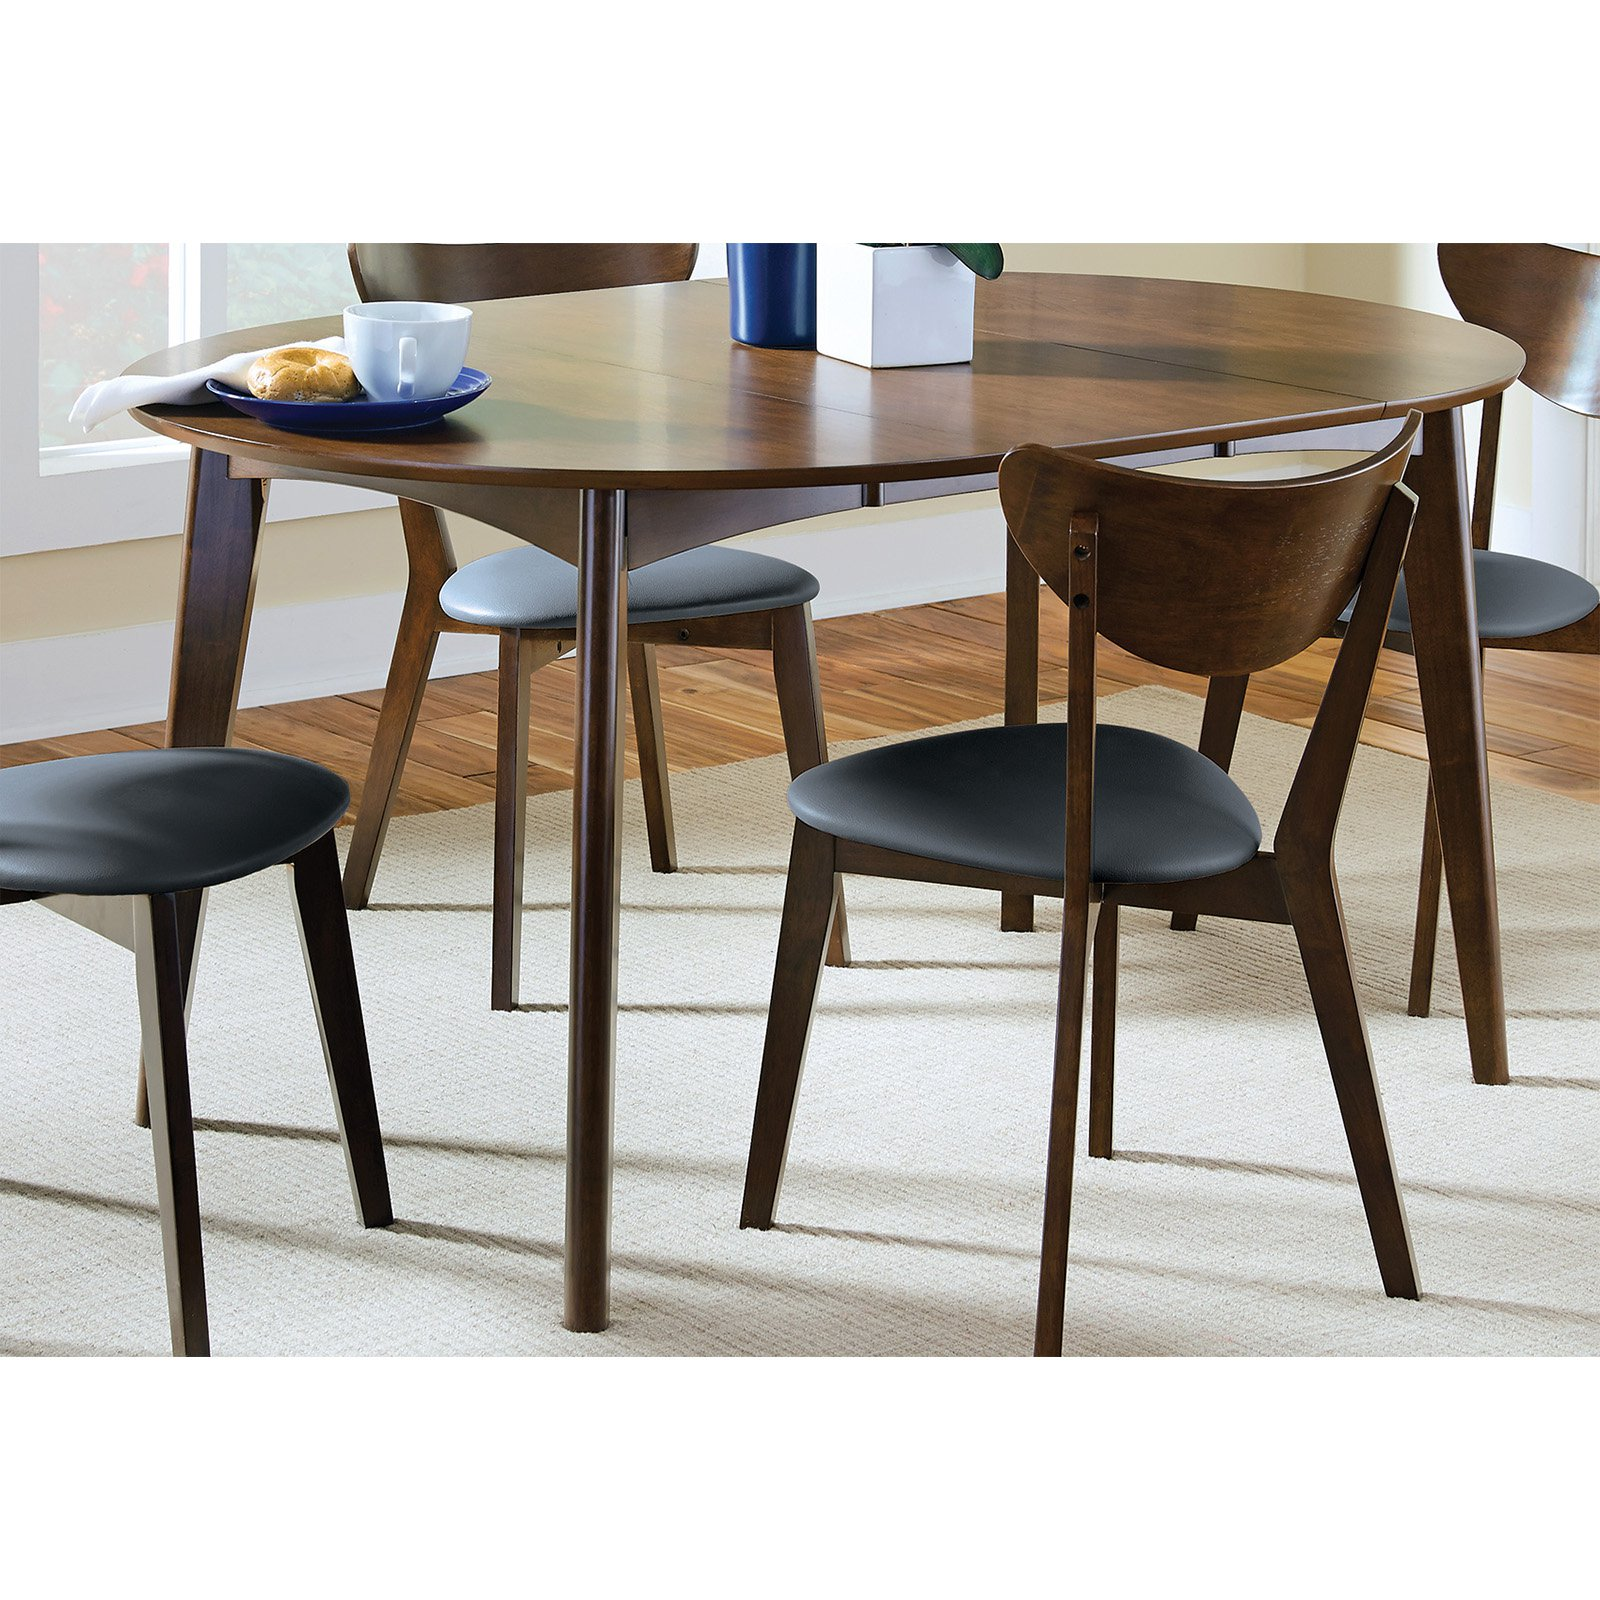 Coaster Company Malone Collection, Dining Table